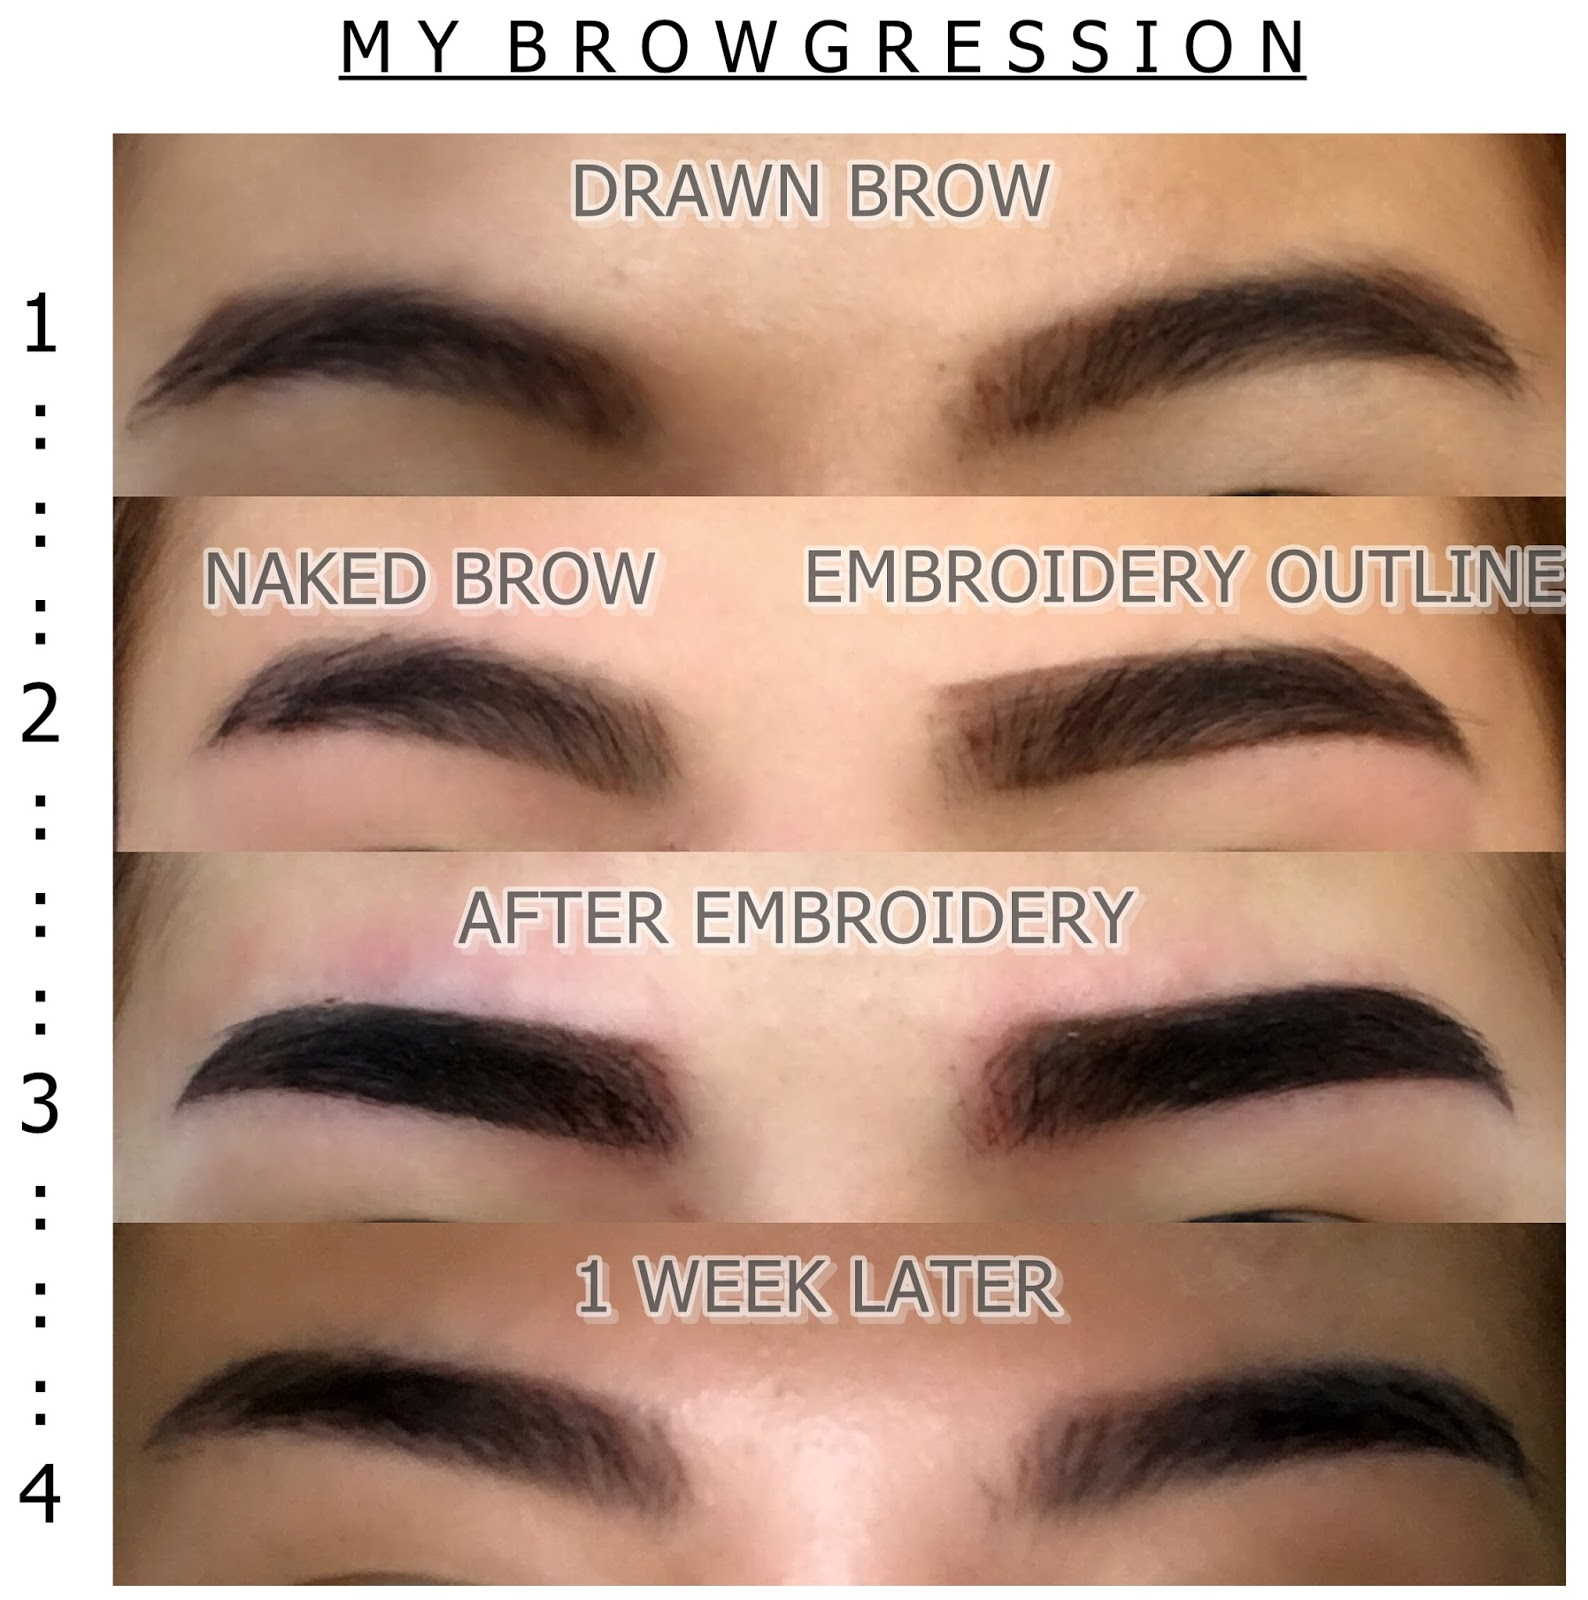 Brow Embroidery Serenes Blog